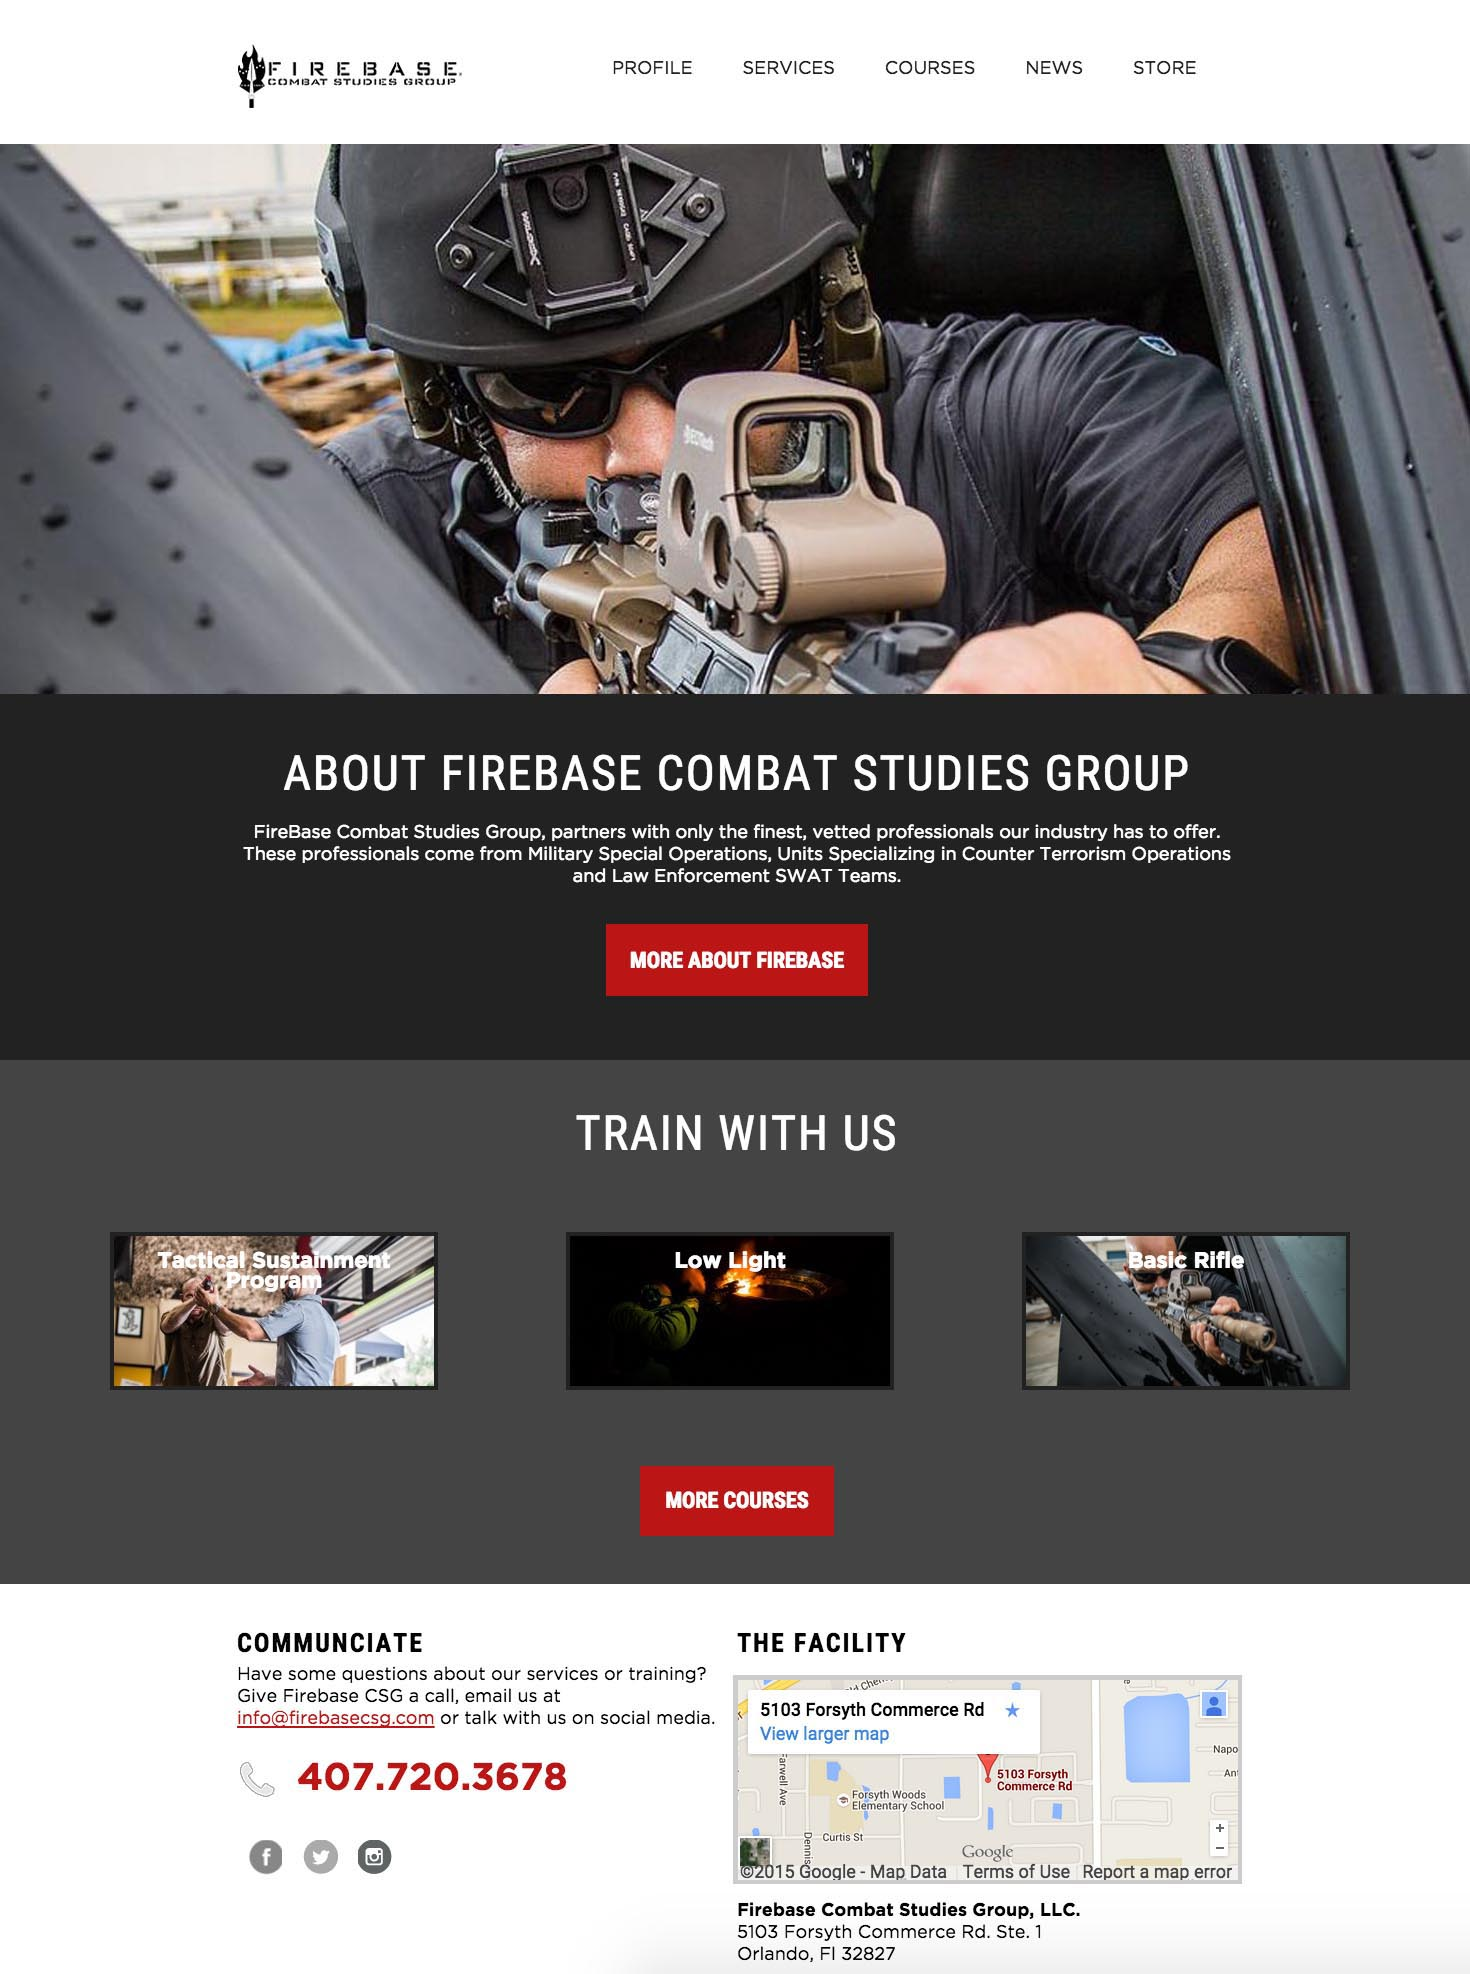 Firebase Combat Studies Group